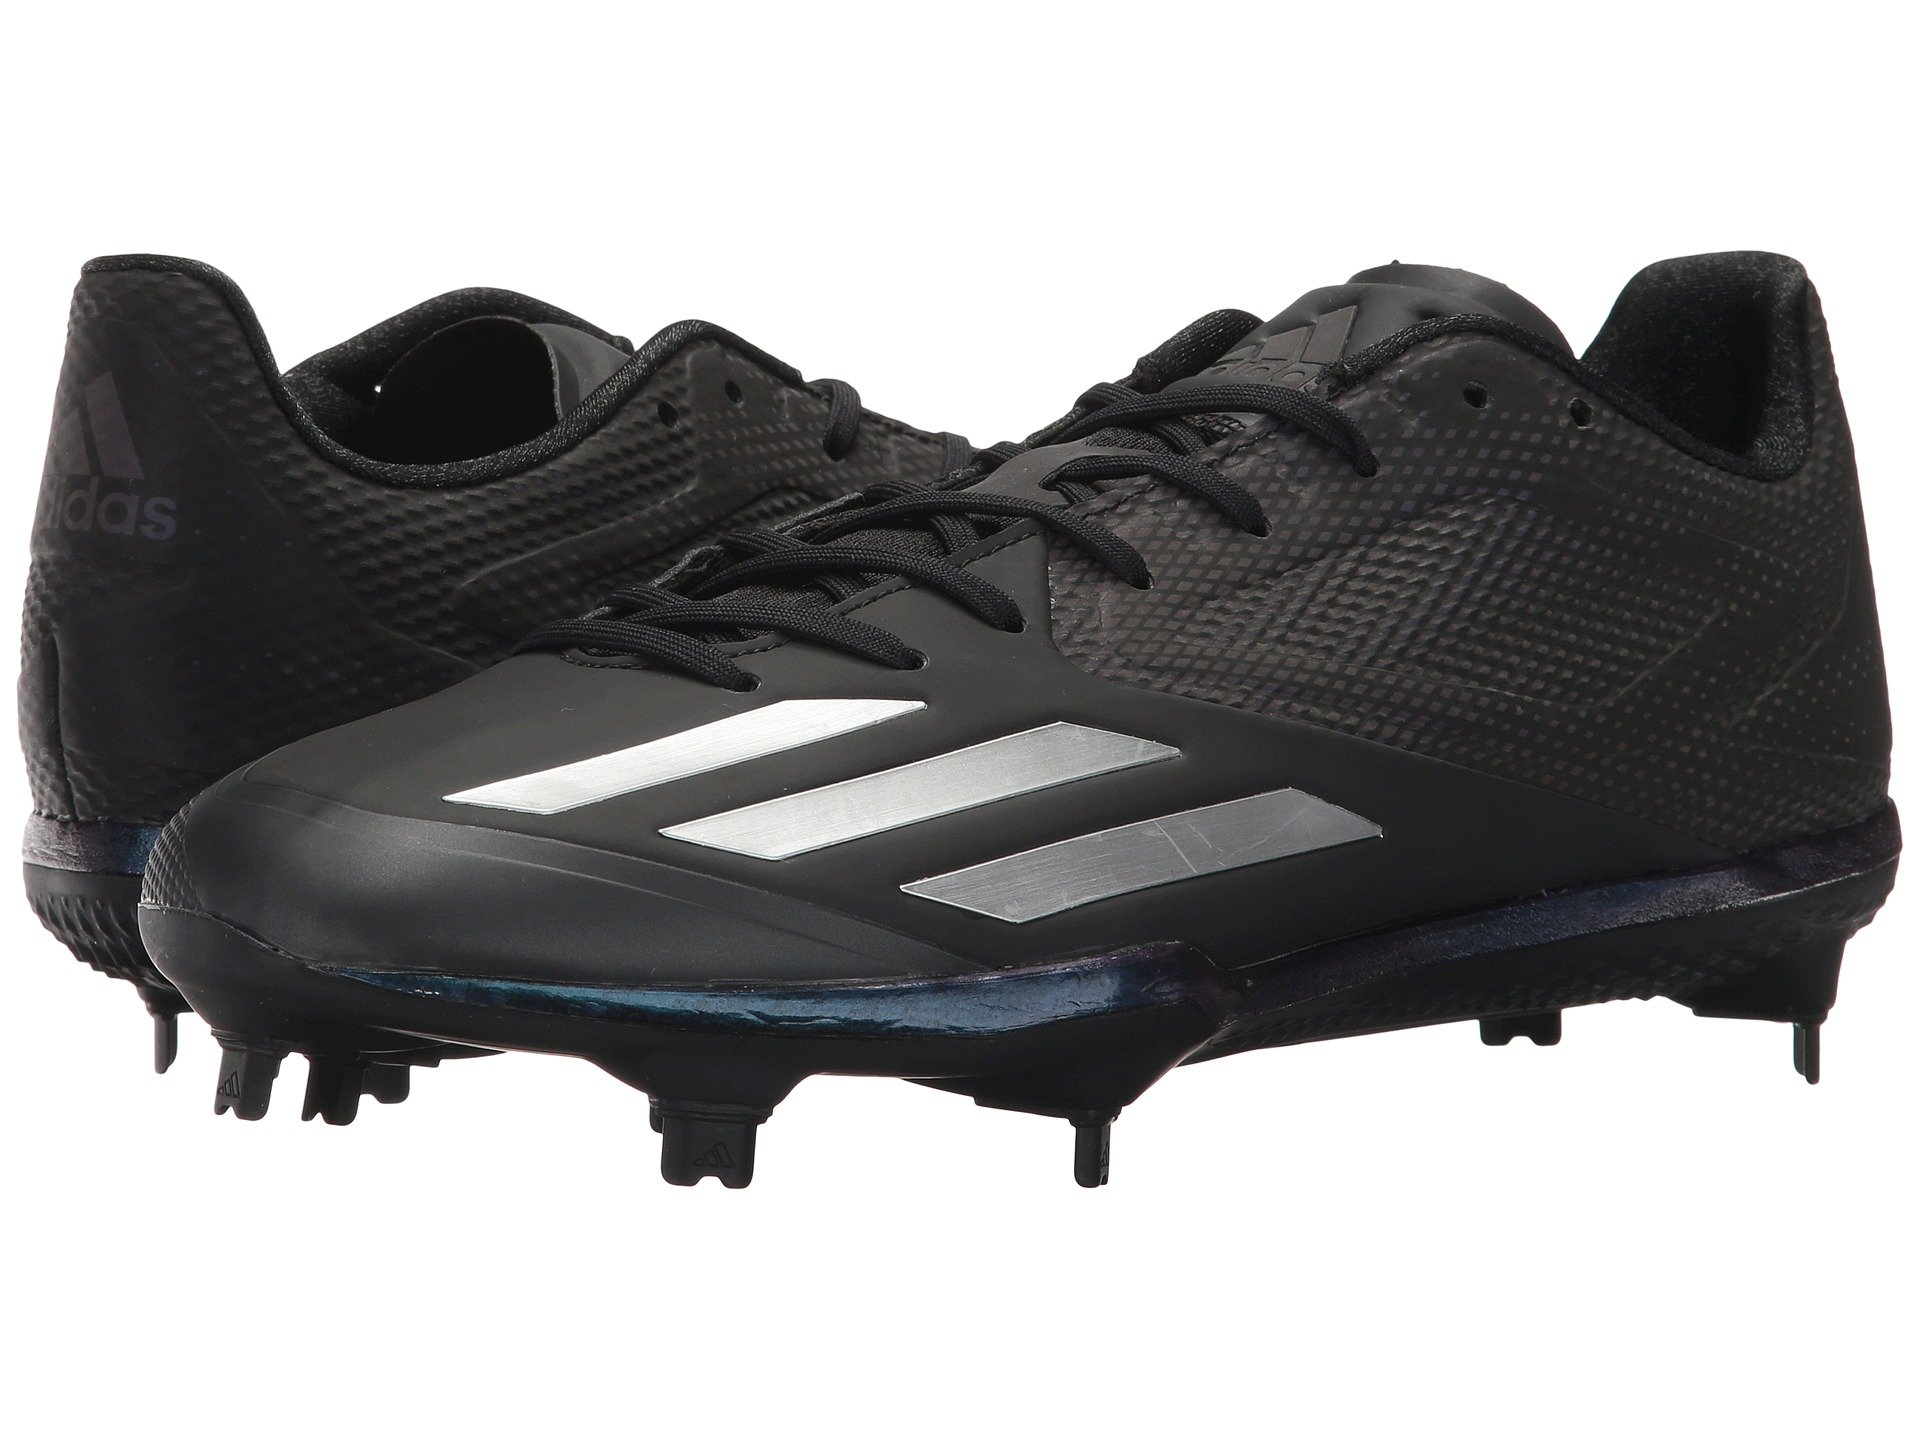 new product 25ff6 3b963 ADIDAS ORIGINALS ADIZERO AFTERBURNER 3 XENO, BLACKSILVER METALLICSILVER  METALLIC